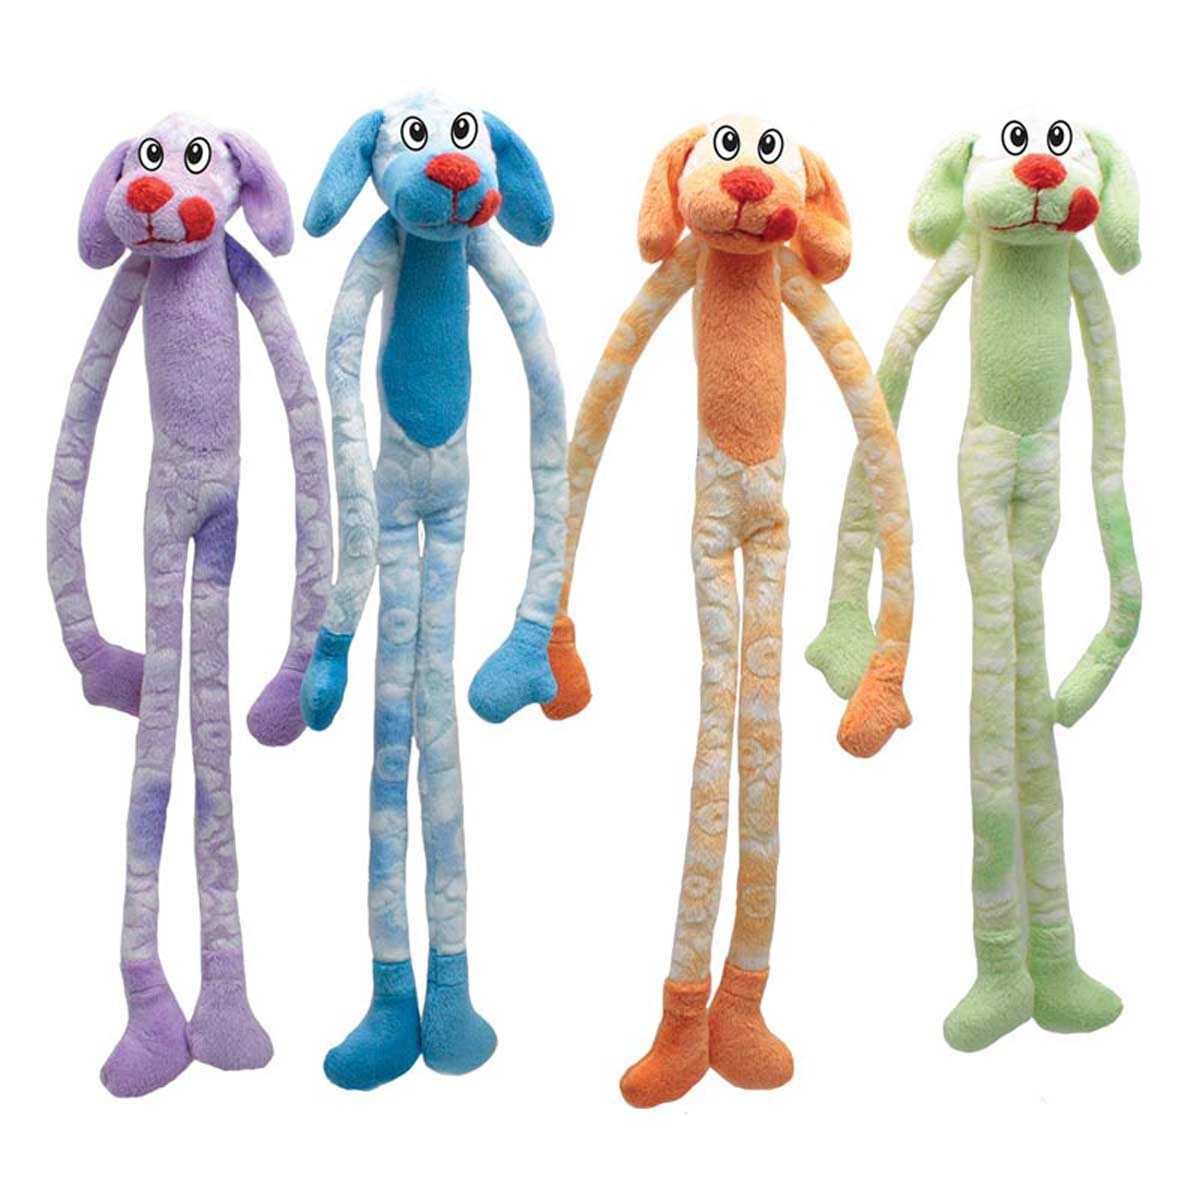 Various Colors of Dawgeee Small Groovy Long Dog - 14 inch - Toys for Dogs